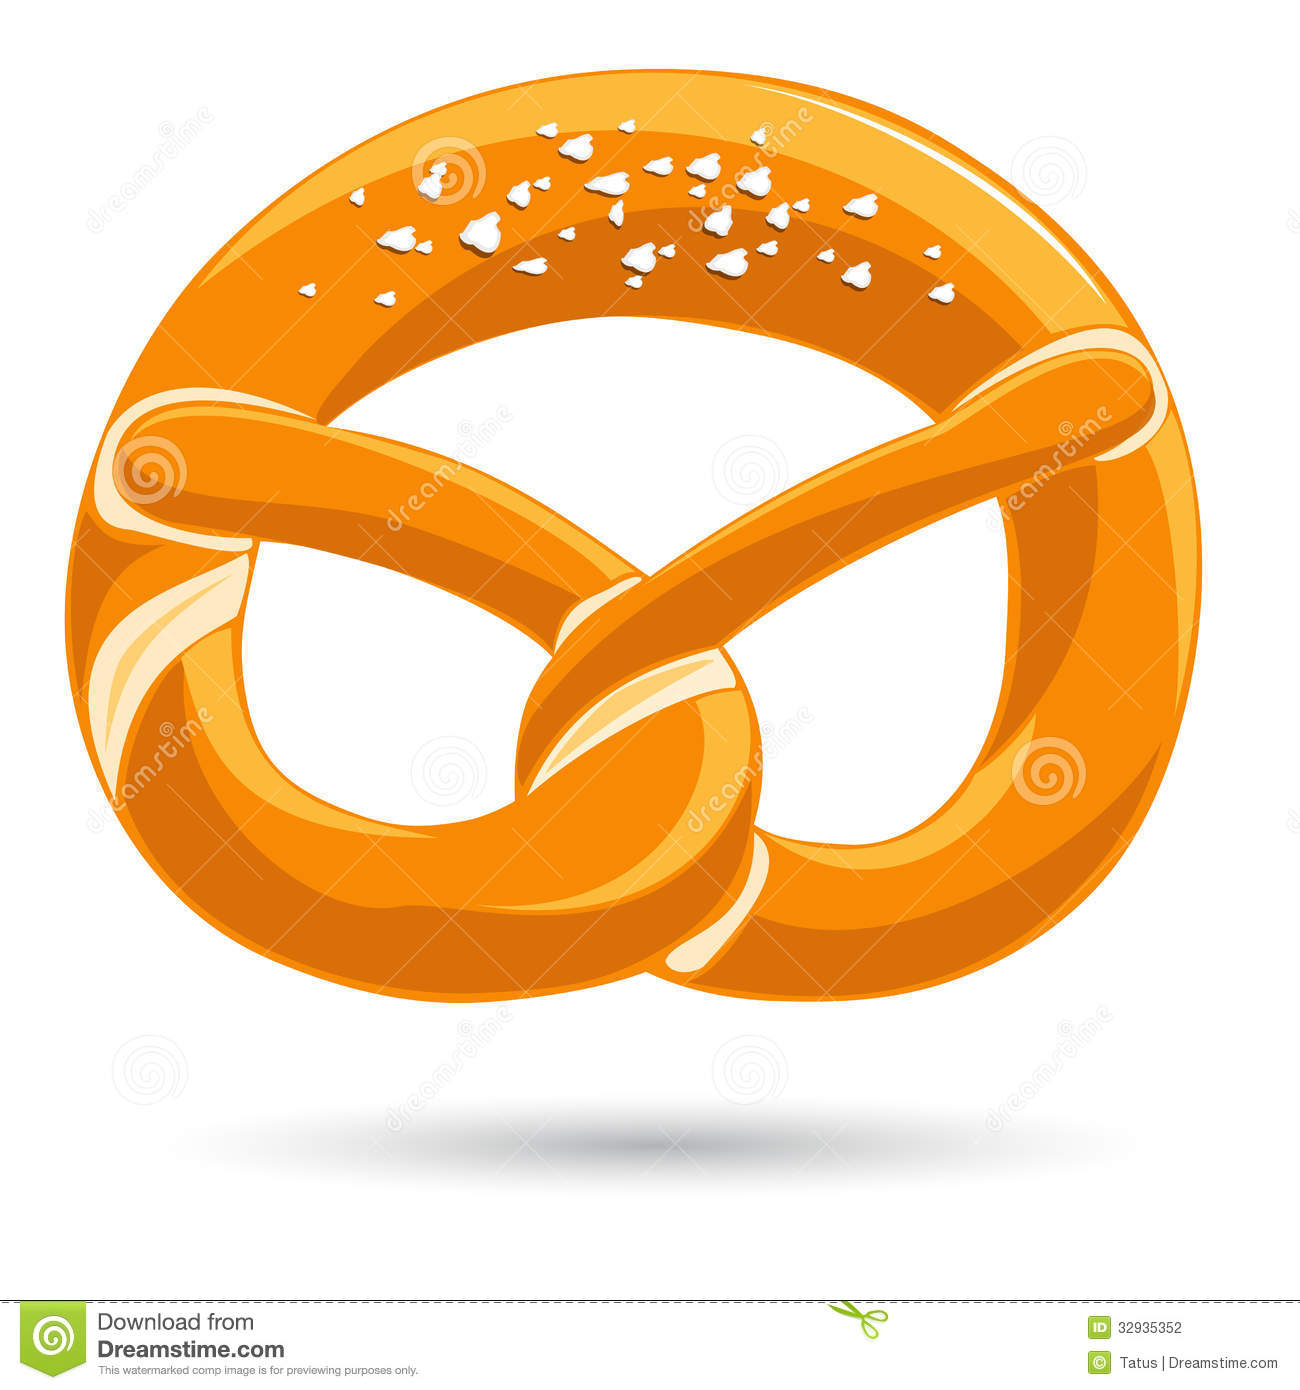 German pretzel clipart.